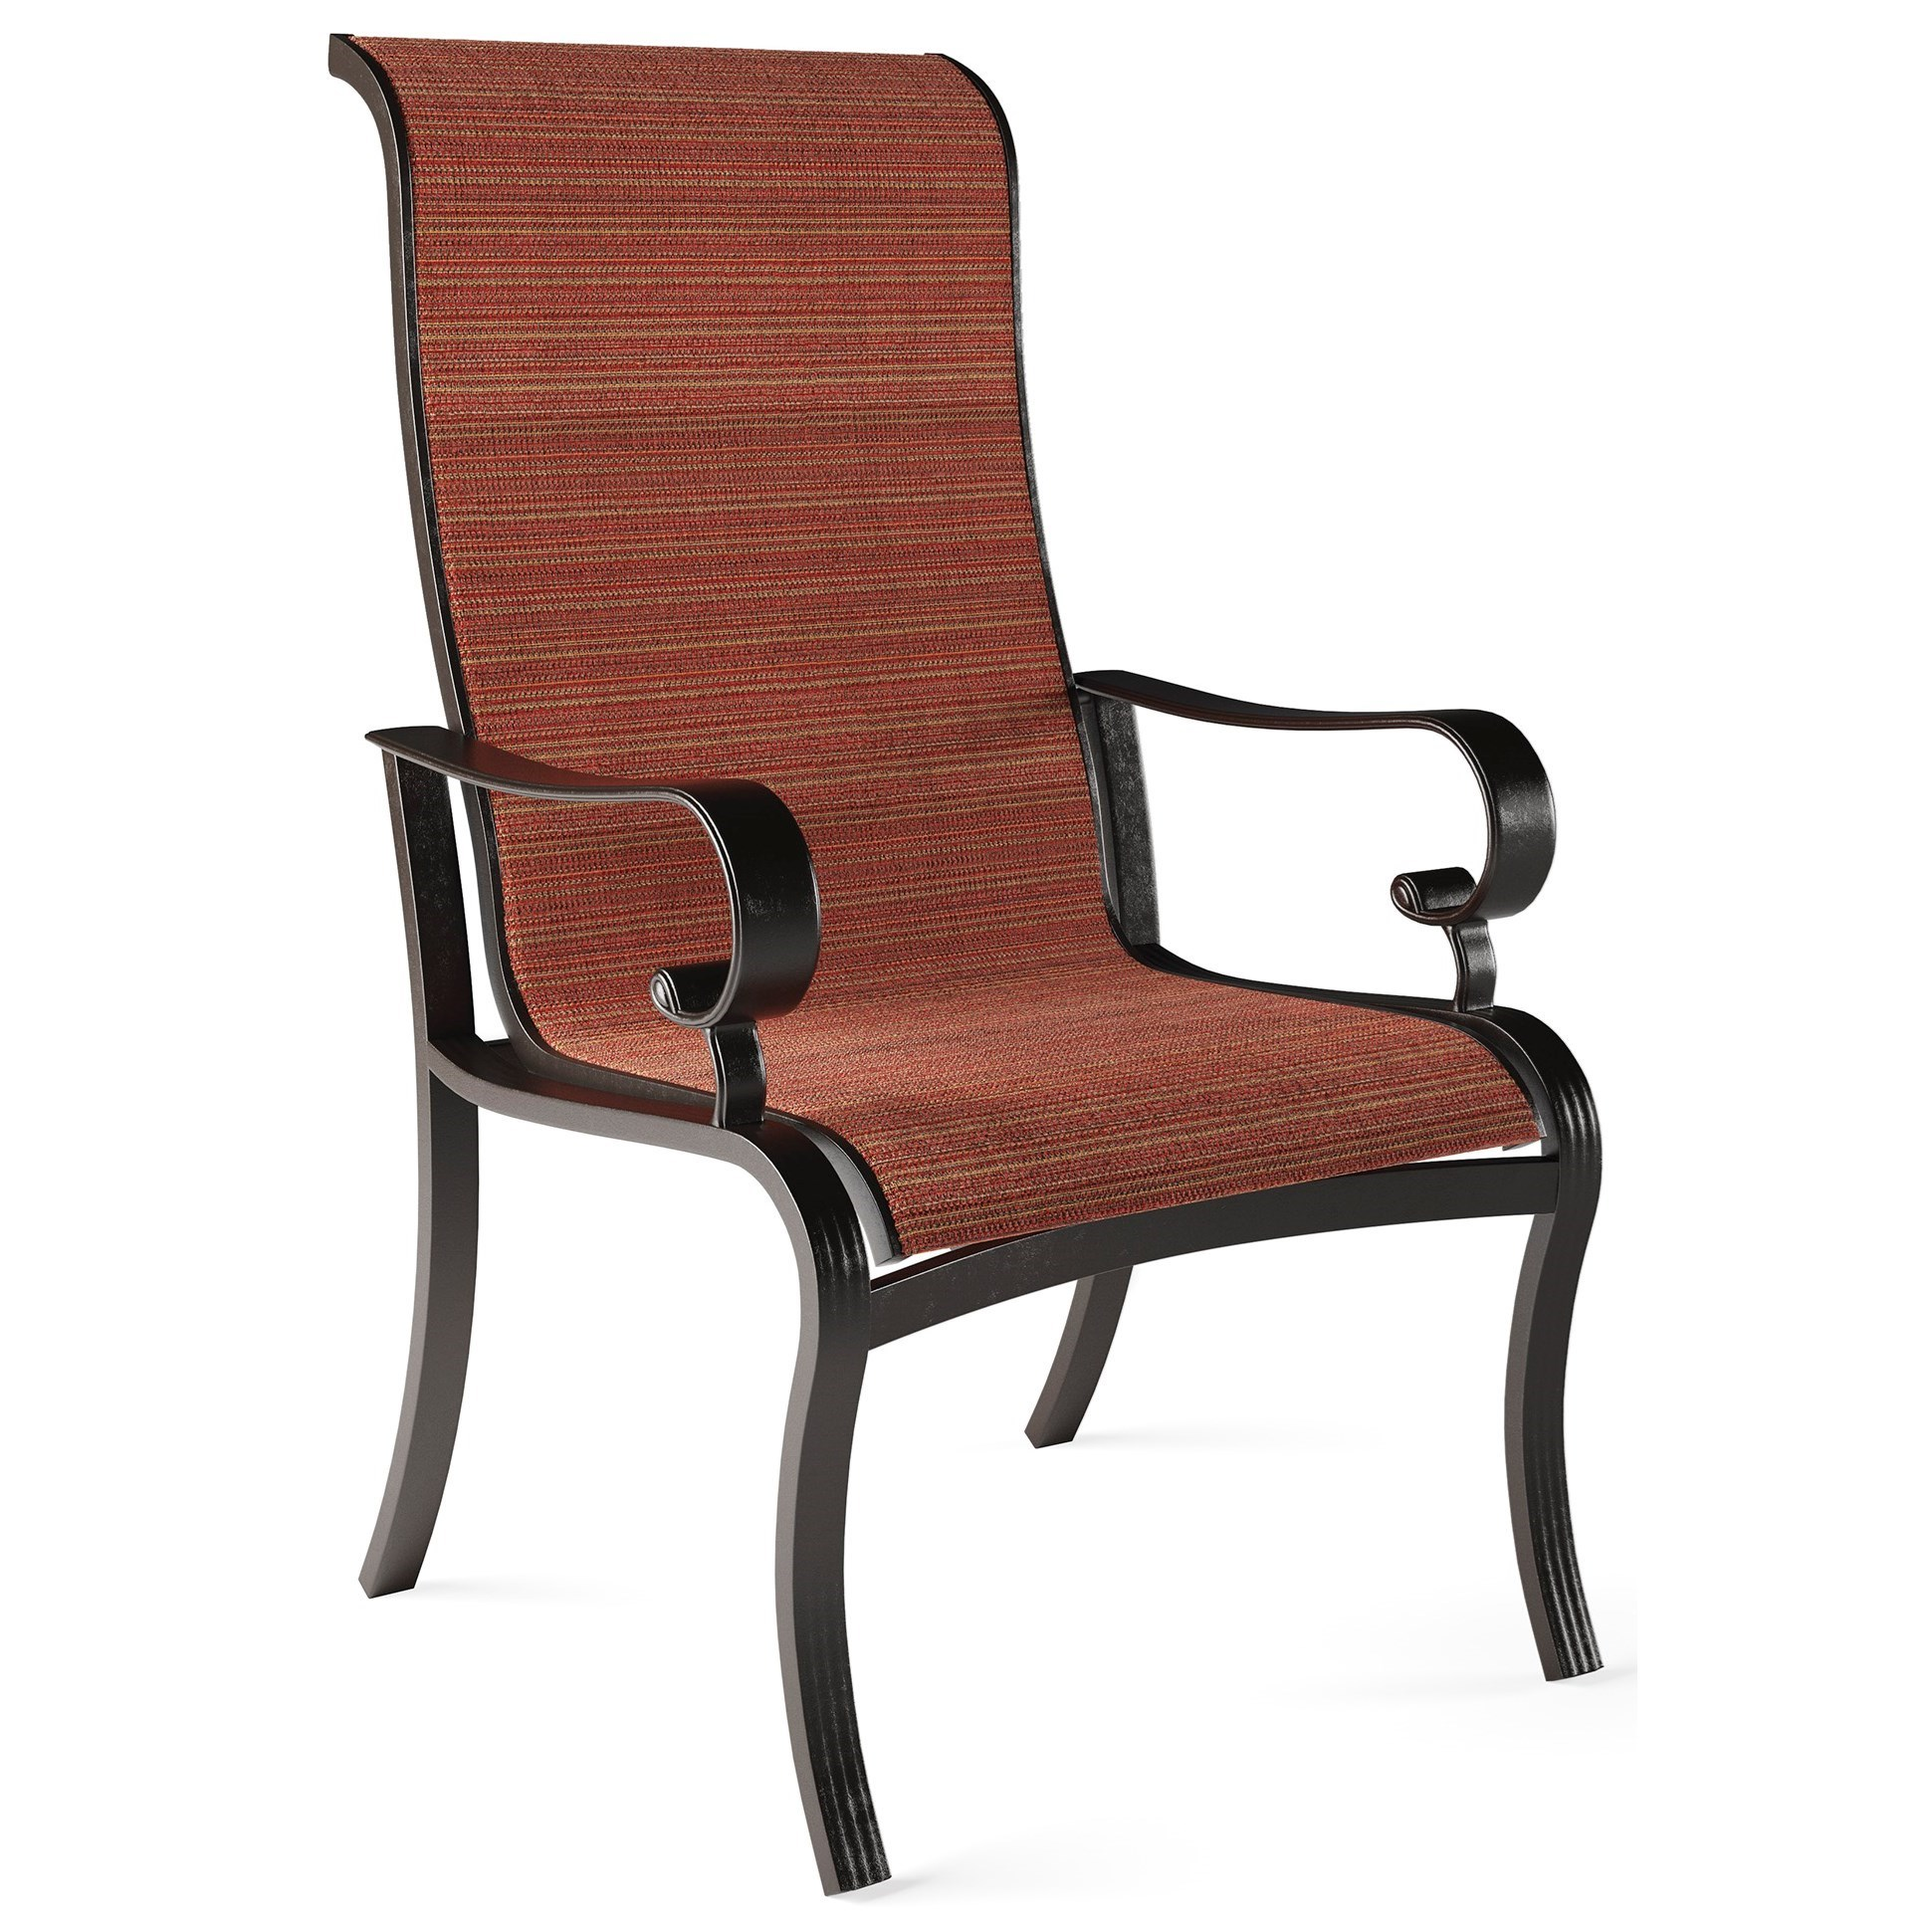 Apple Town Set of 2 Sling Chairs by Signature Design by Ashley at Lapeer Furniture & Mattress Center